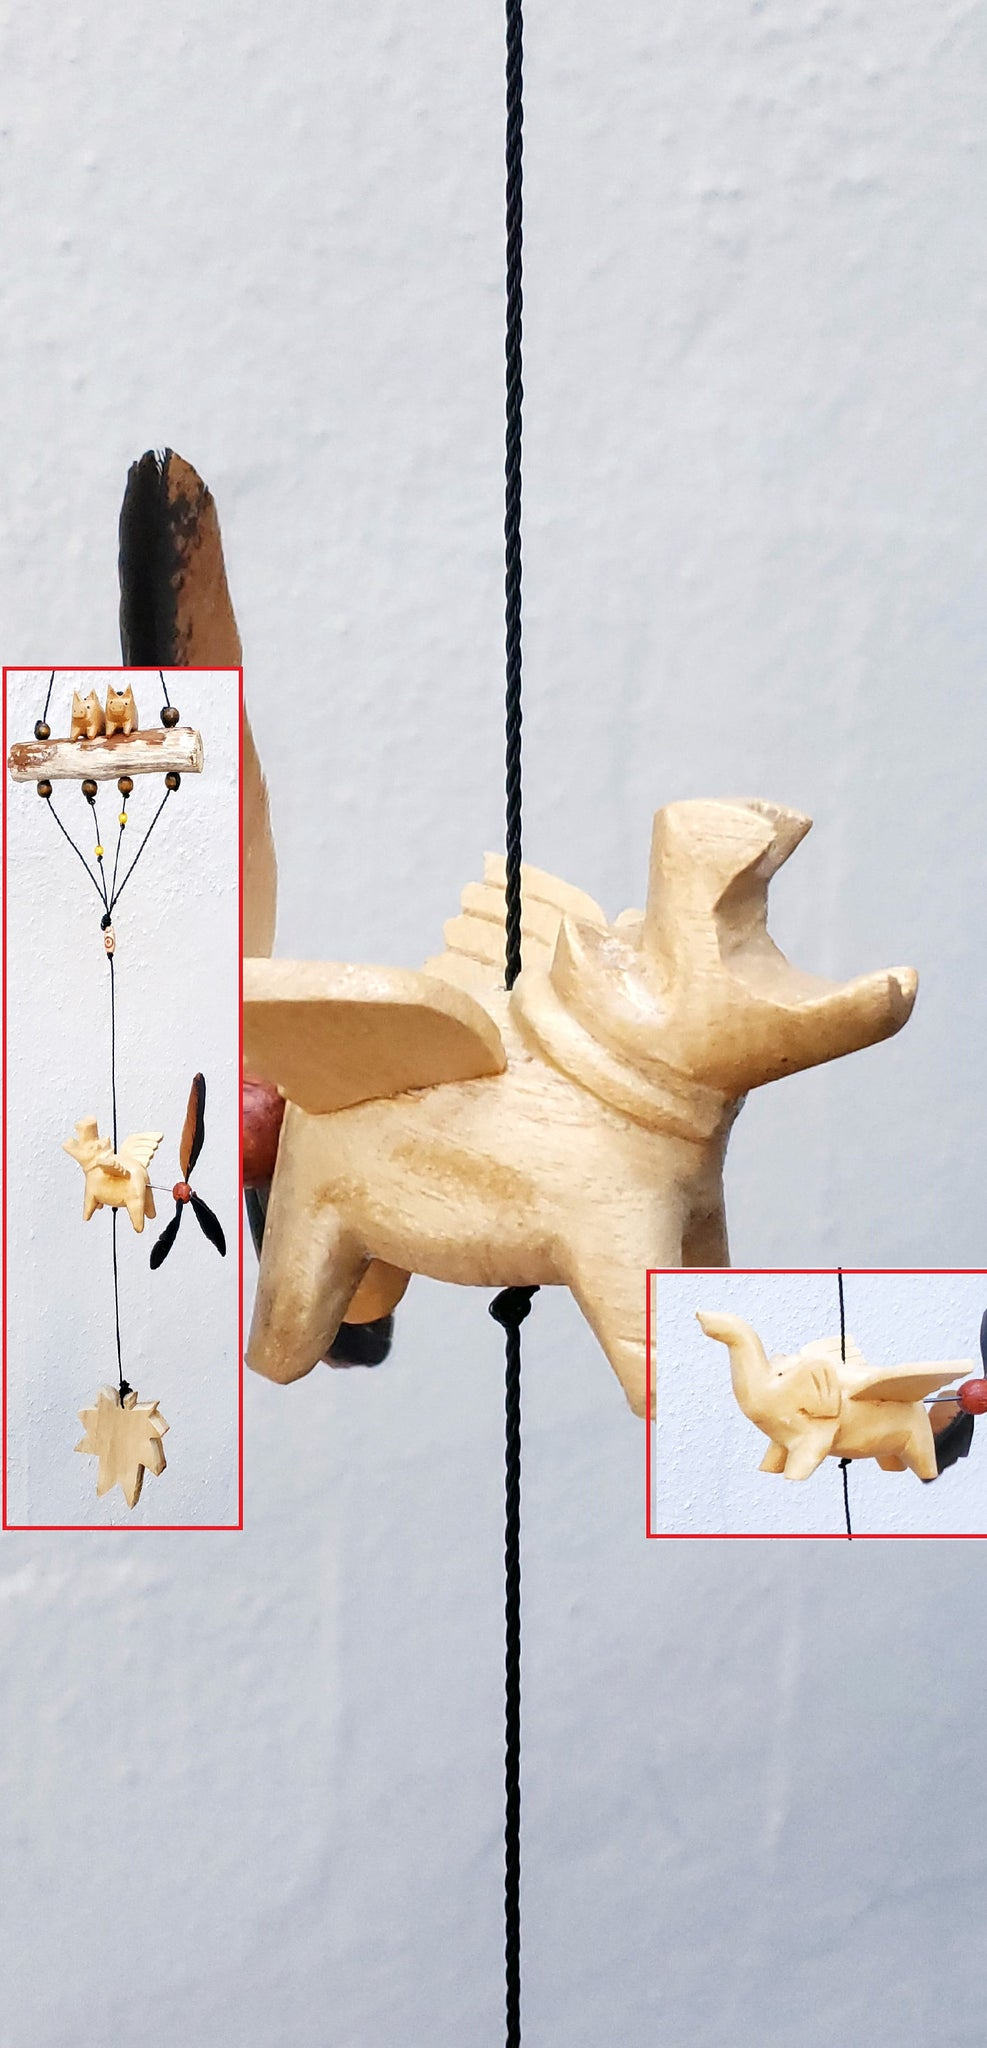 Flying Hippo,Fling Dumbo, with two little pigs, wood craving with  propellers wind spinner.weatherproof.